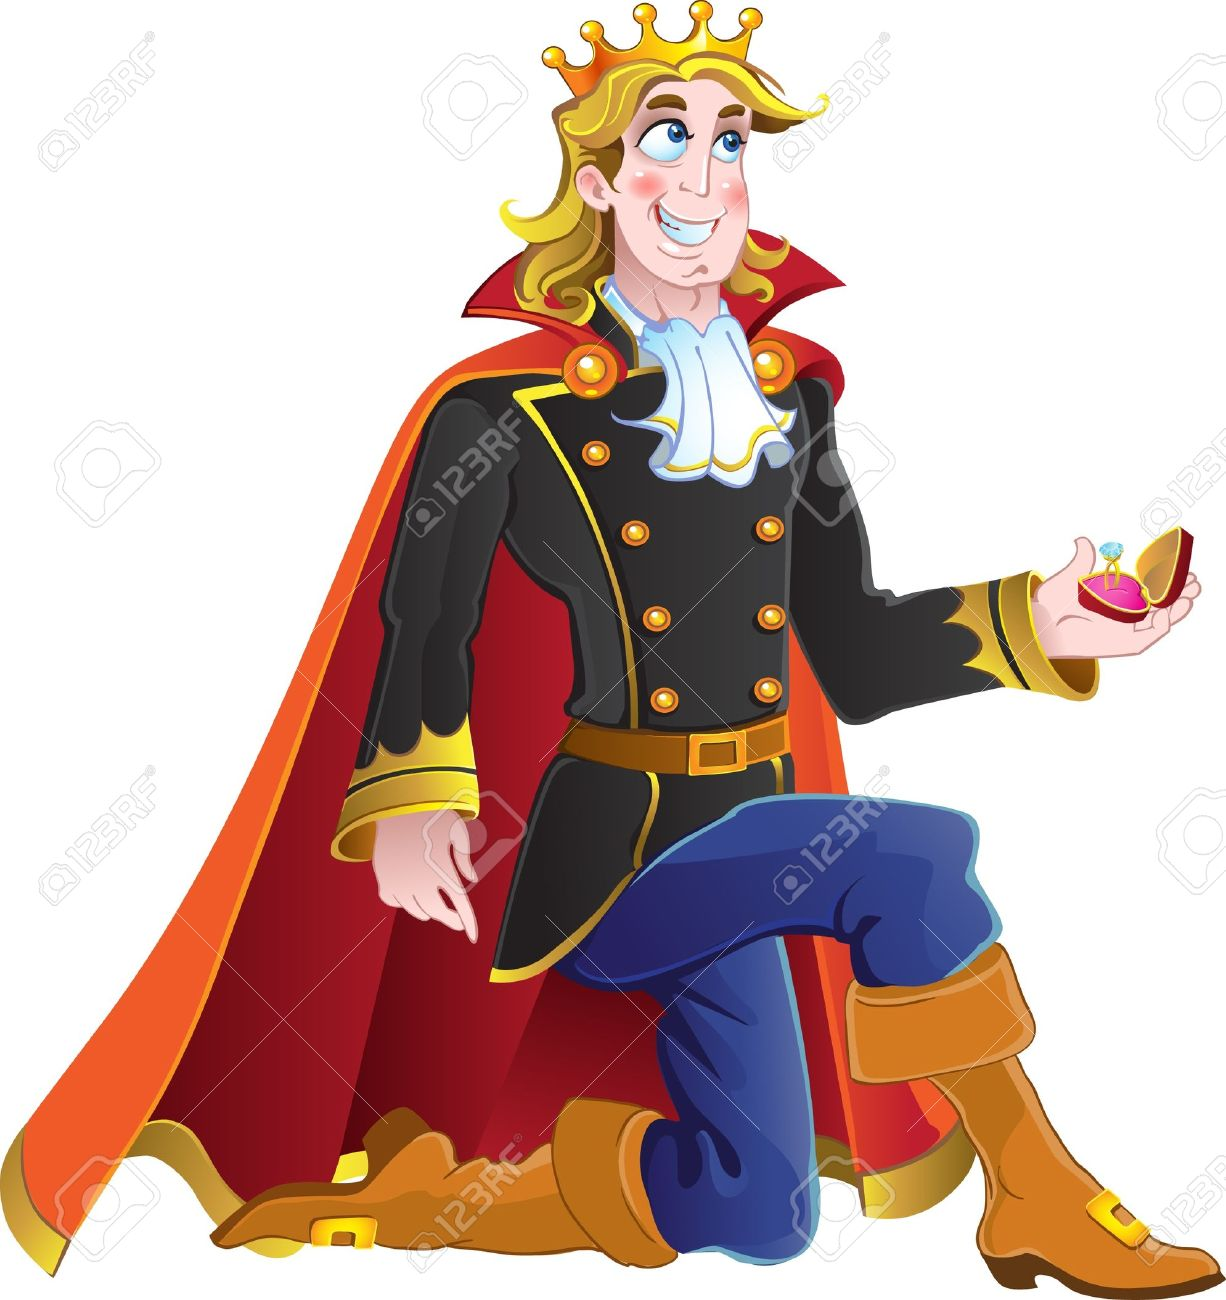 1 147 prince charming stock vector illustration and royalty free